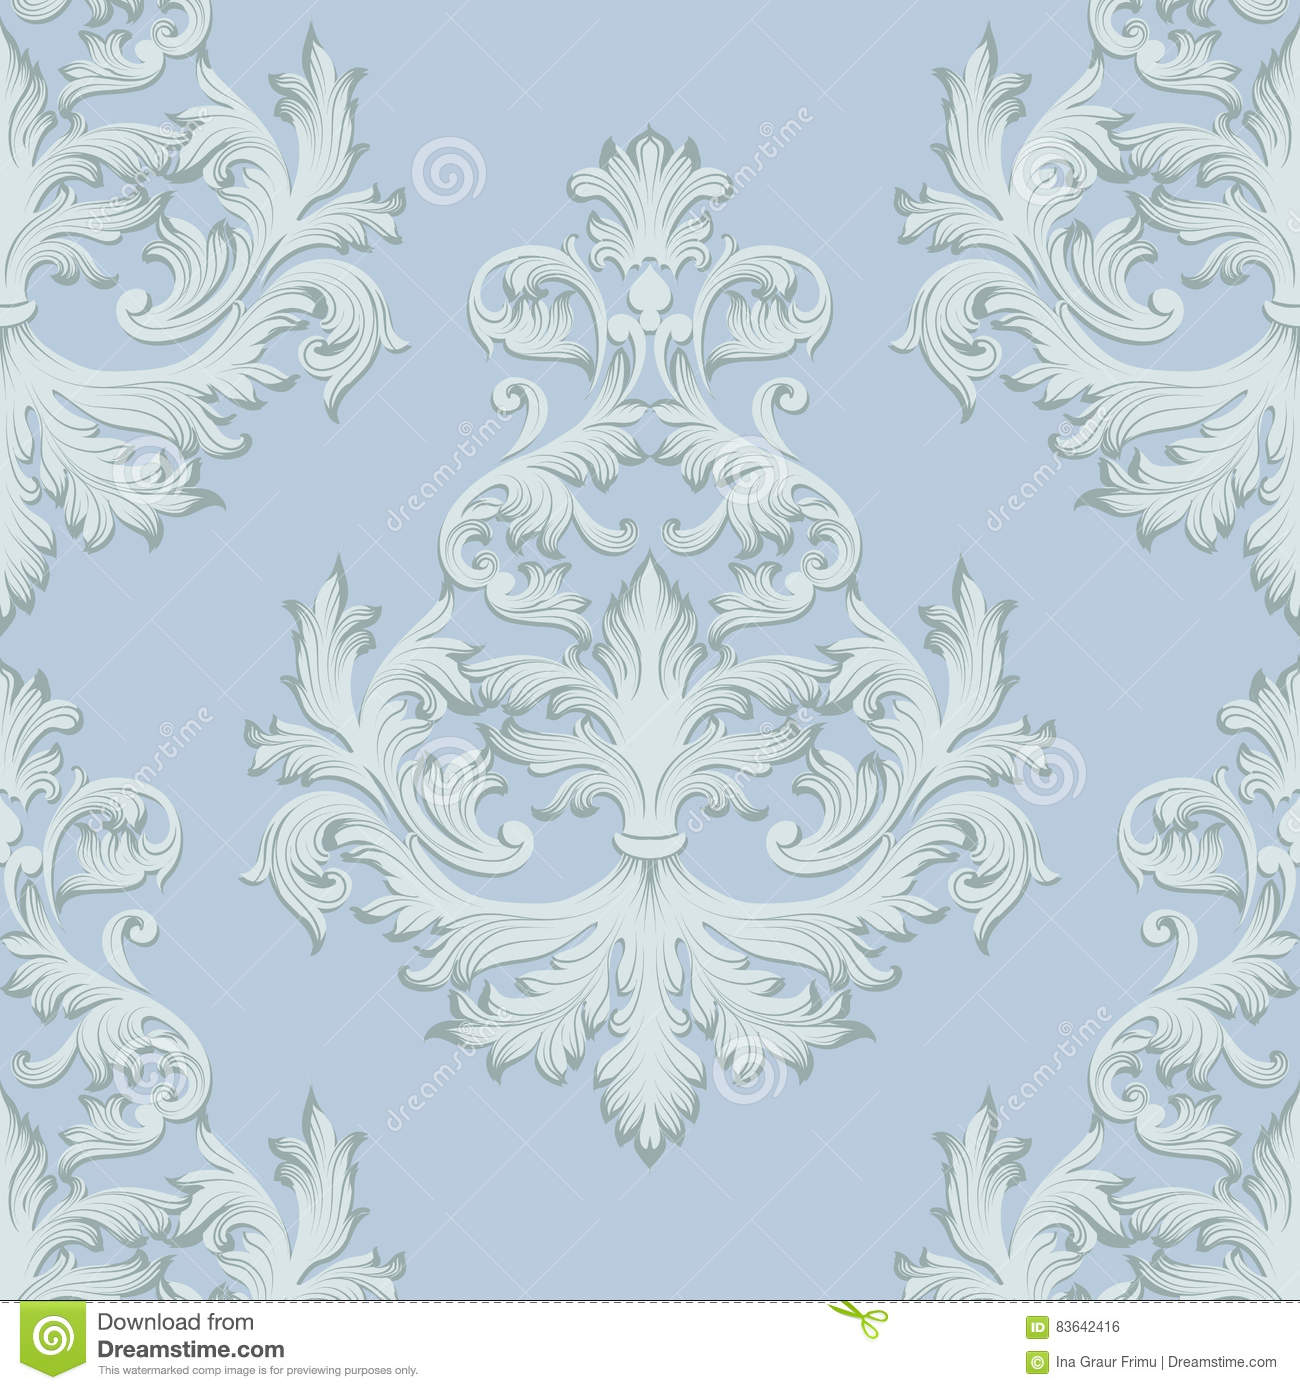 Vintage baroque damask floral retro pattern acanthus for Acanthus decoration